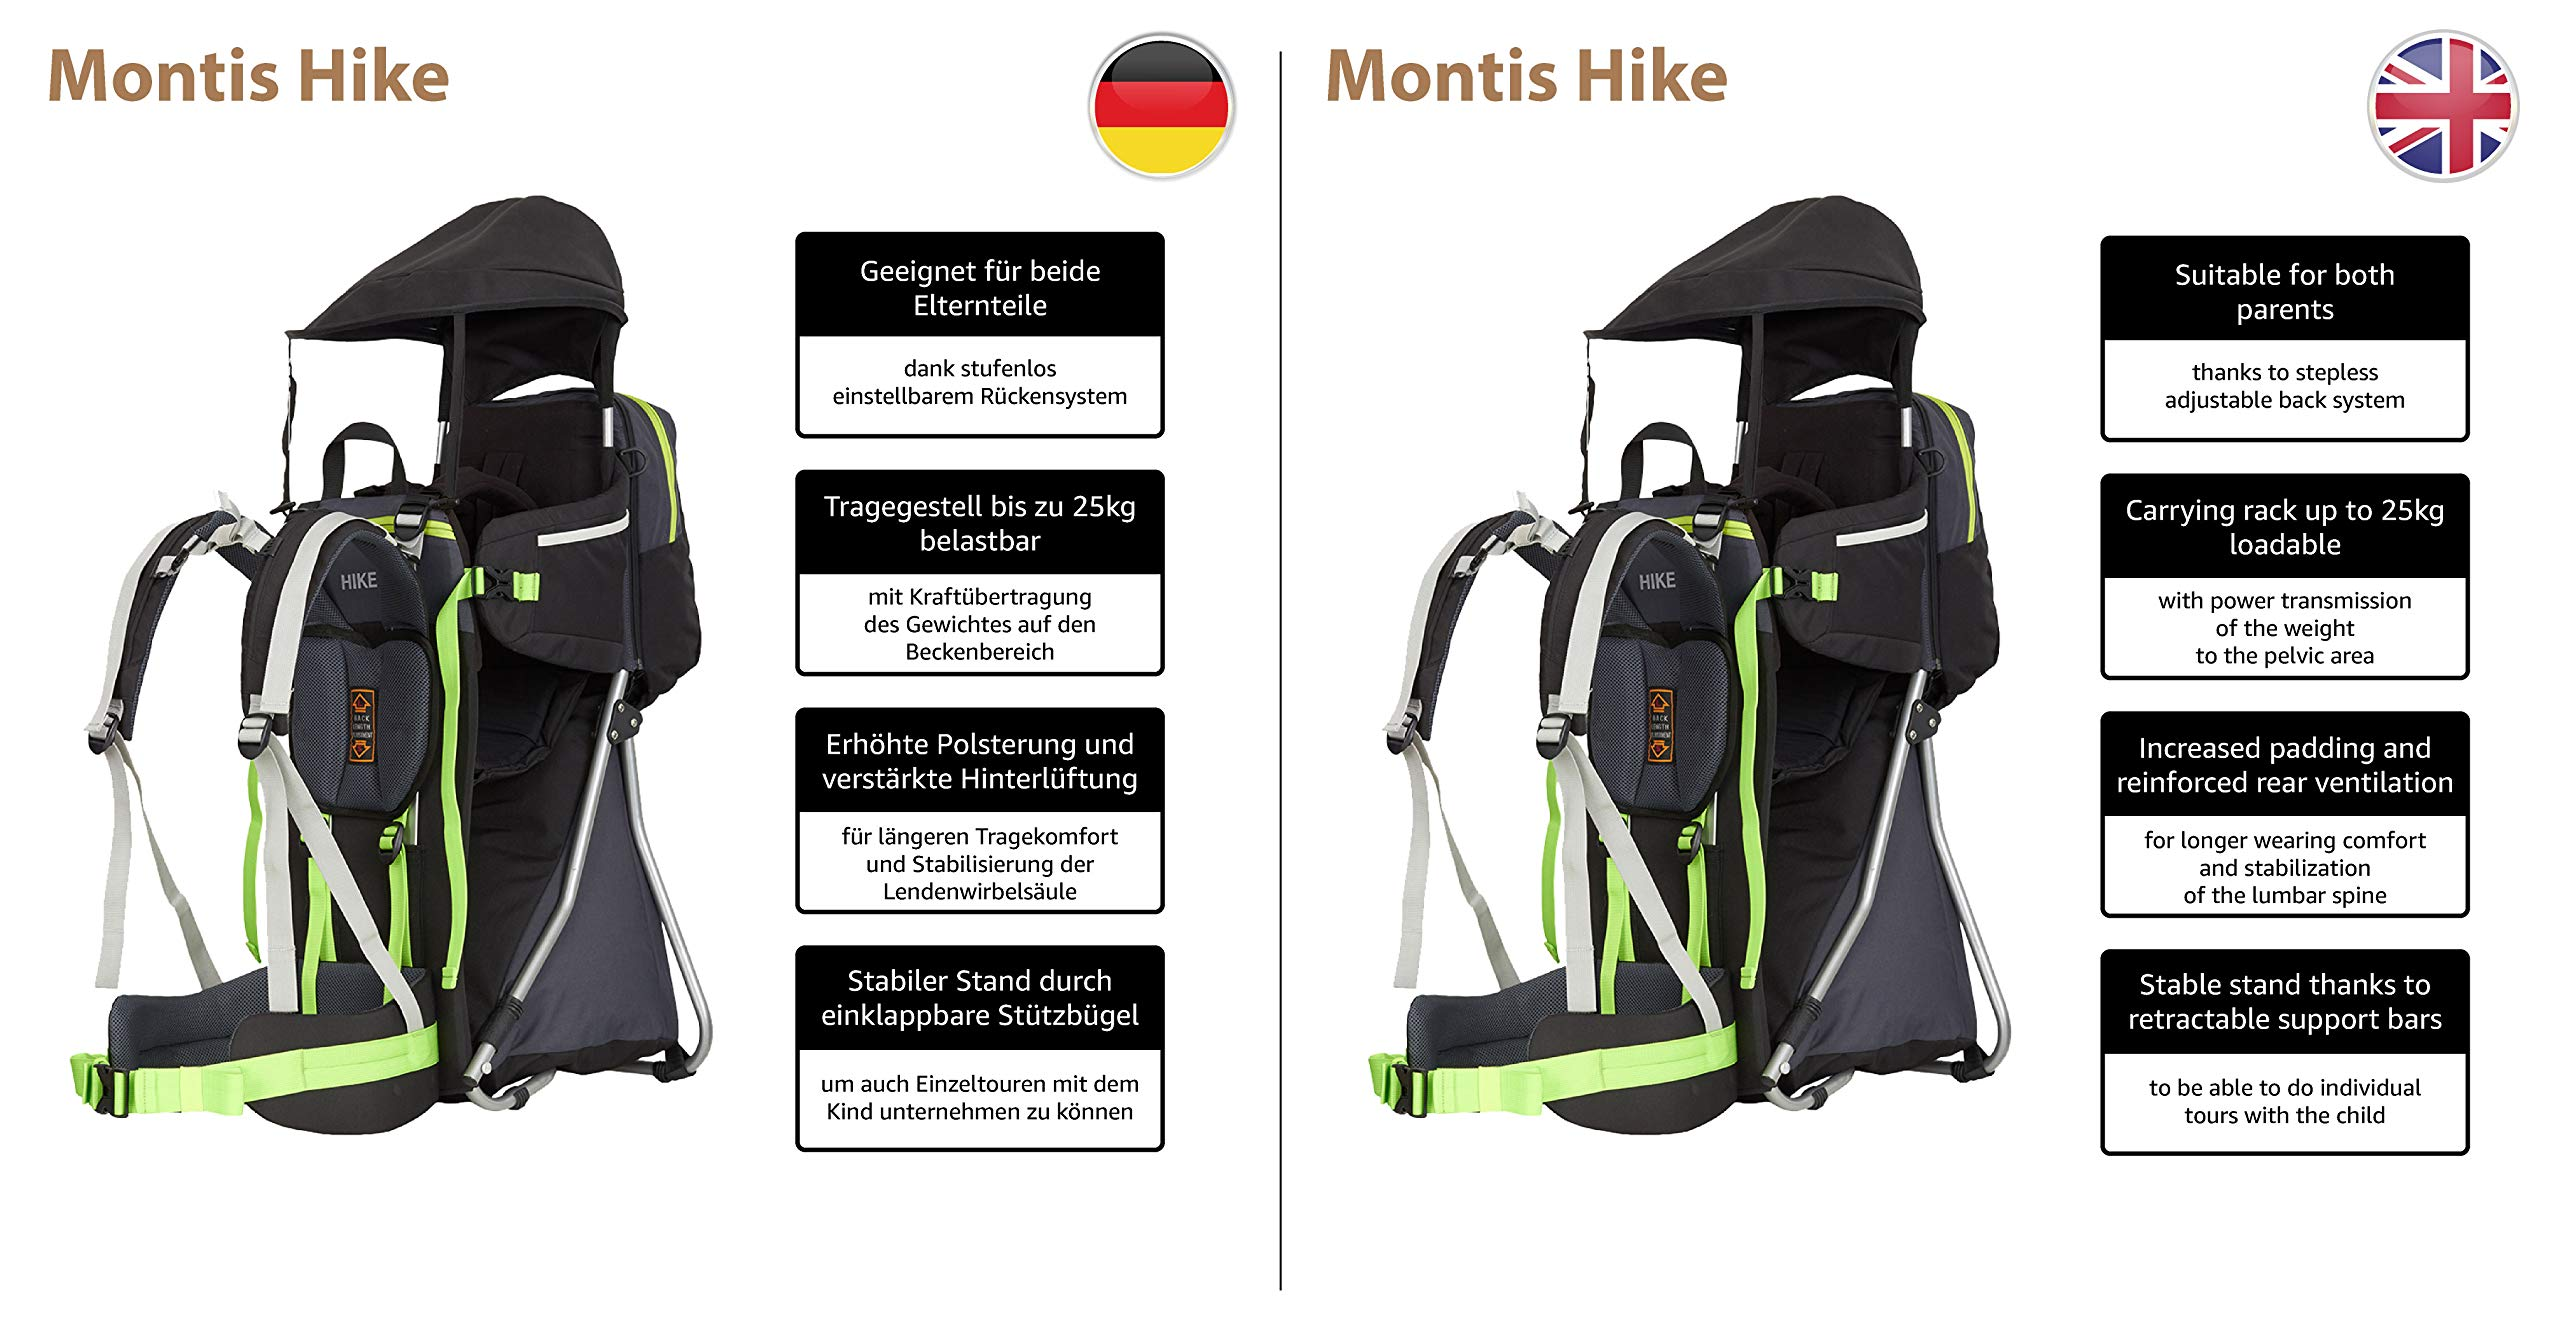 MONTIS HIKE, Premium Back Baby/Child Carrier, Up to 25kg, (black) M MONTIS OUTDOOR 89cm high, 37cm wide | up to 25kg | various colours | 28L seat bag Laminated and dirt-repellant outer material | approx. 2.2kg (without extras) Fully-adjustable, padded 5-point child's safety harness | plush lining, raised wind guard, can be filled from both sides | forehead cushion 4